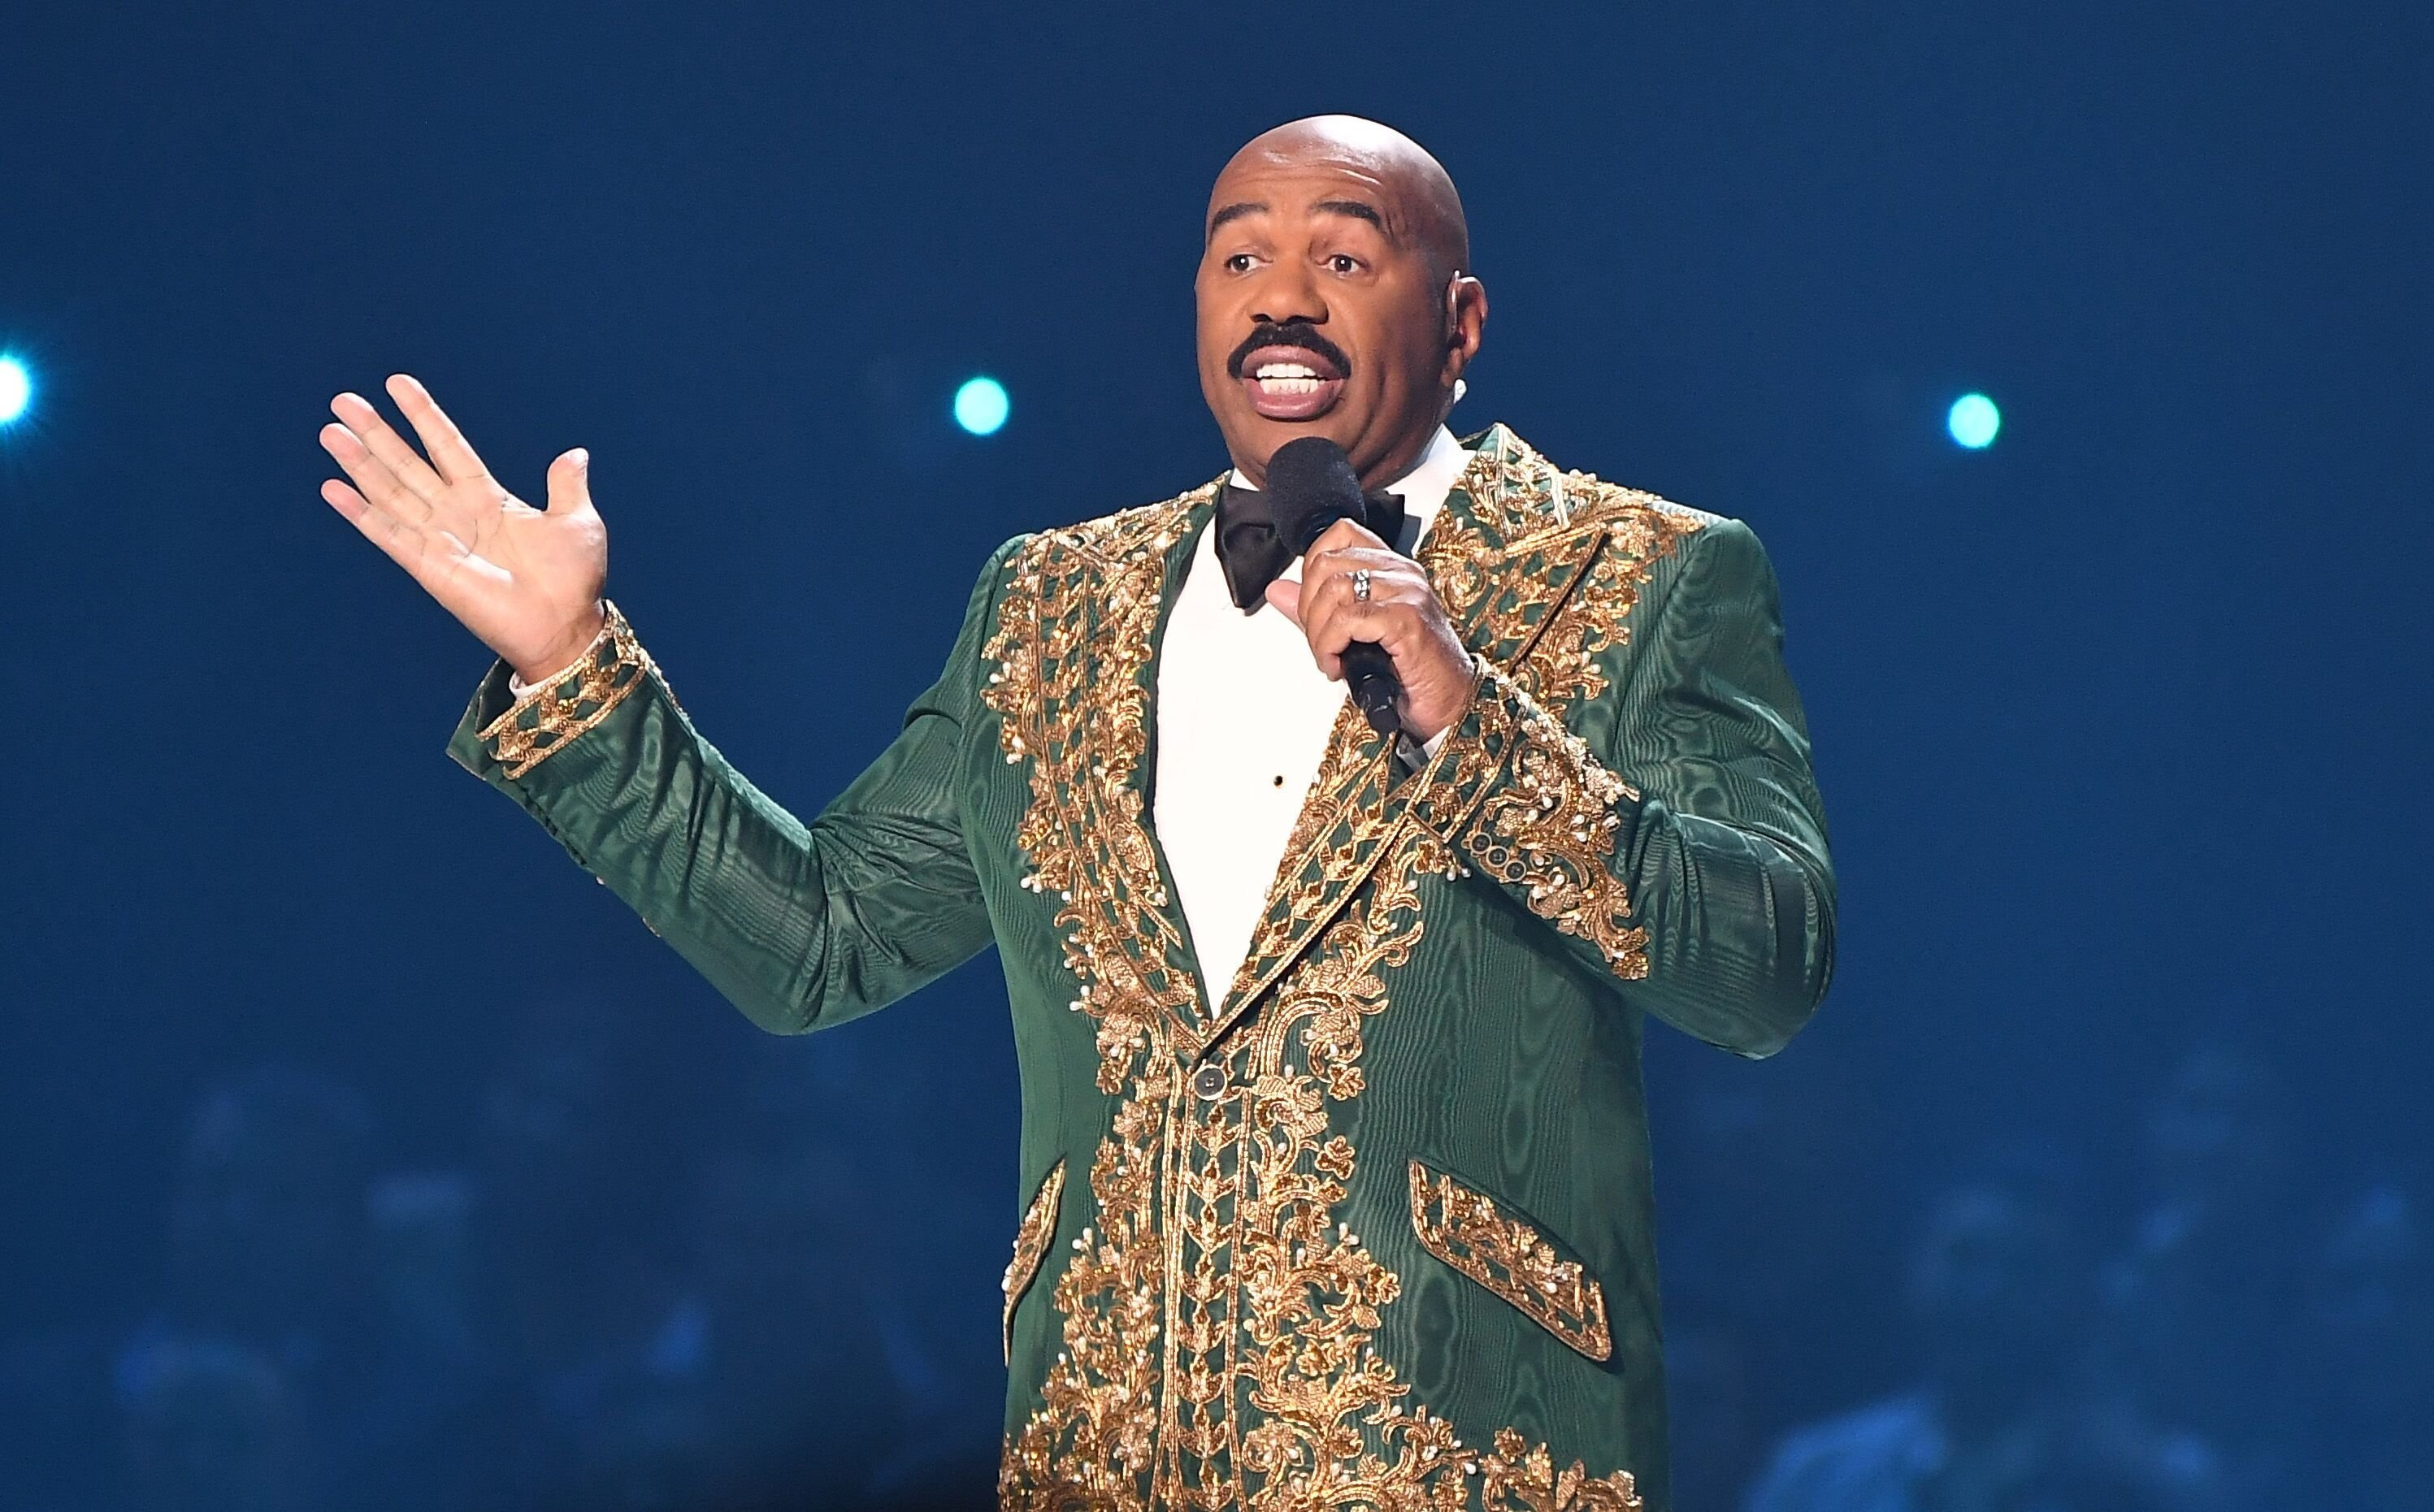 Steve Harvey hosting the Miss Universe Pageant on December 8, 2019 | Photo: Getty Images